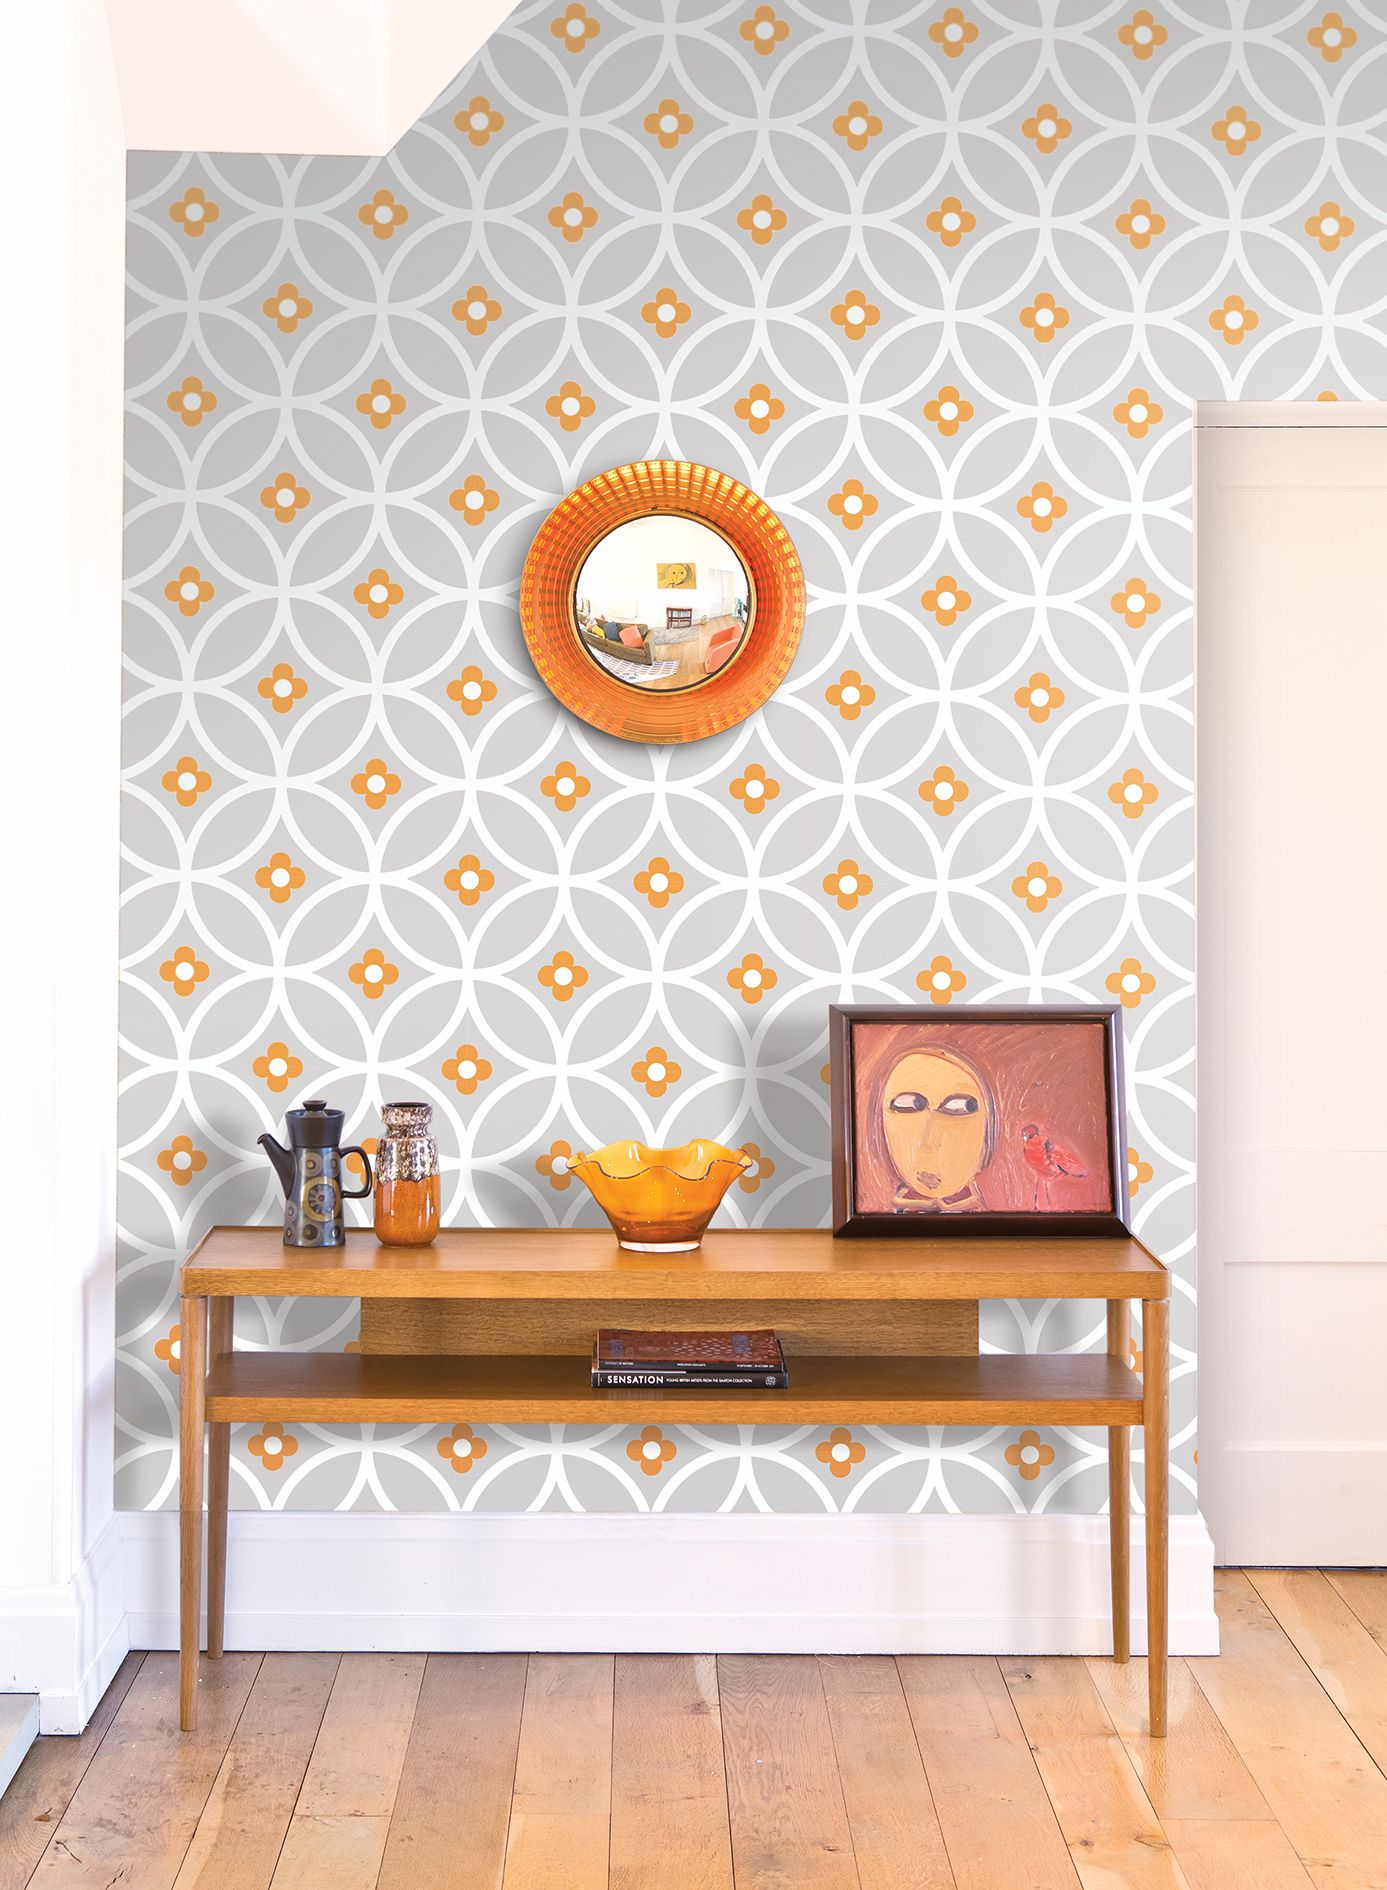 Daisy Chain wallpaper from Layla Faye Retro modern and mid century